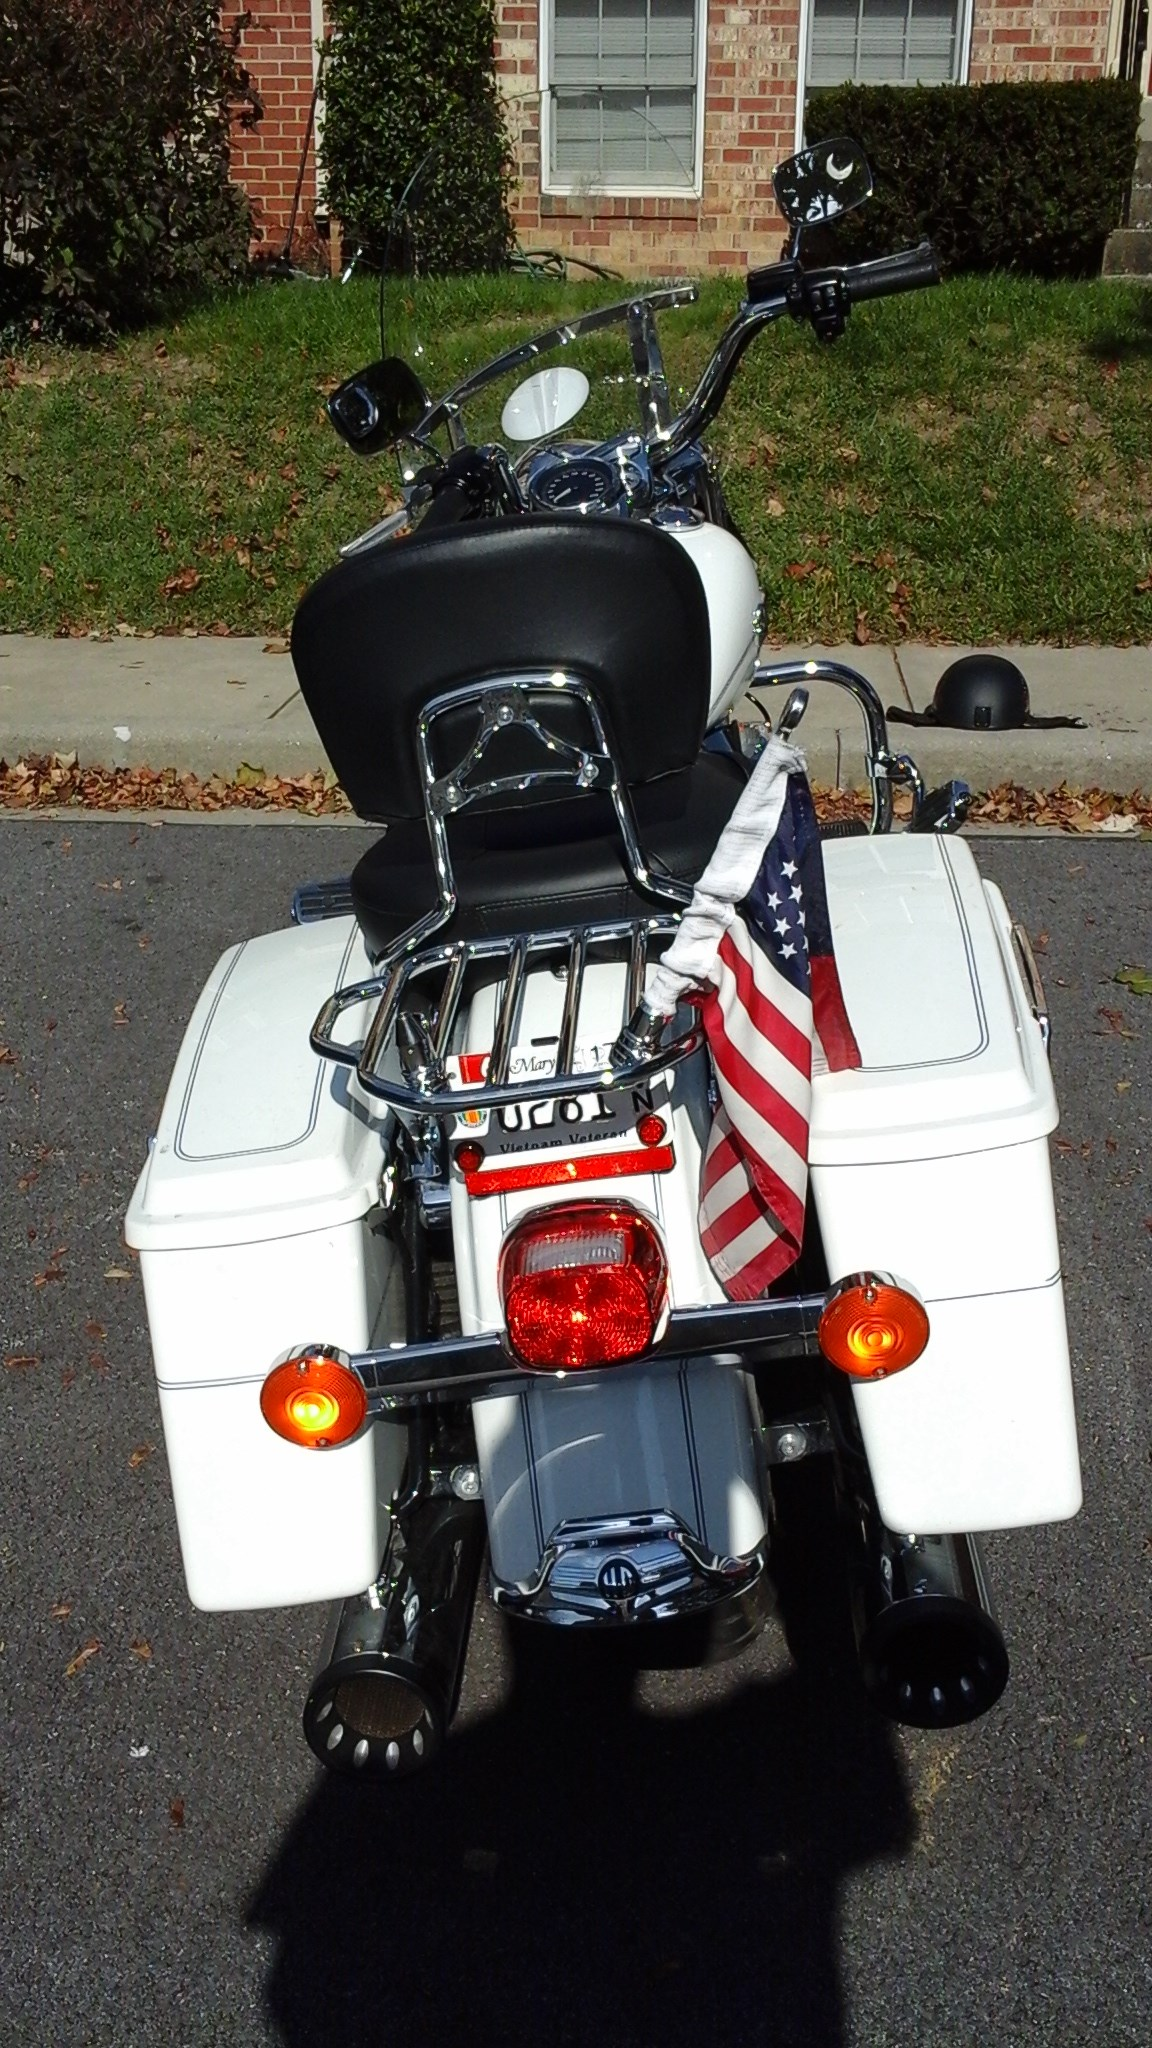 Used Harley Davidson Motorcycles For Sale San Marcos Tx >> 2013 Harley-Davidson® FLHRC/I Road King® Classic (Pearl White), Walkersville, Maryland (675073 ...